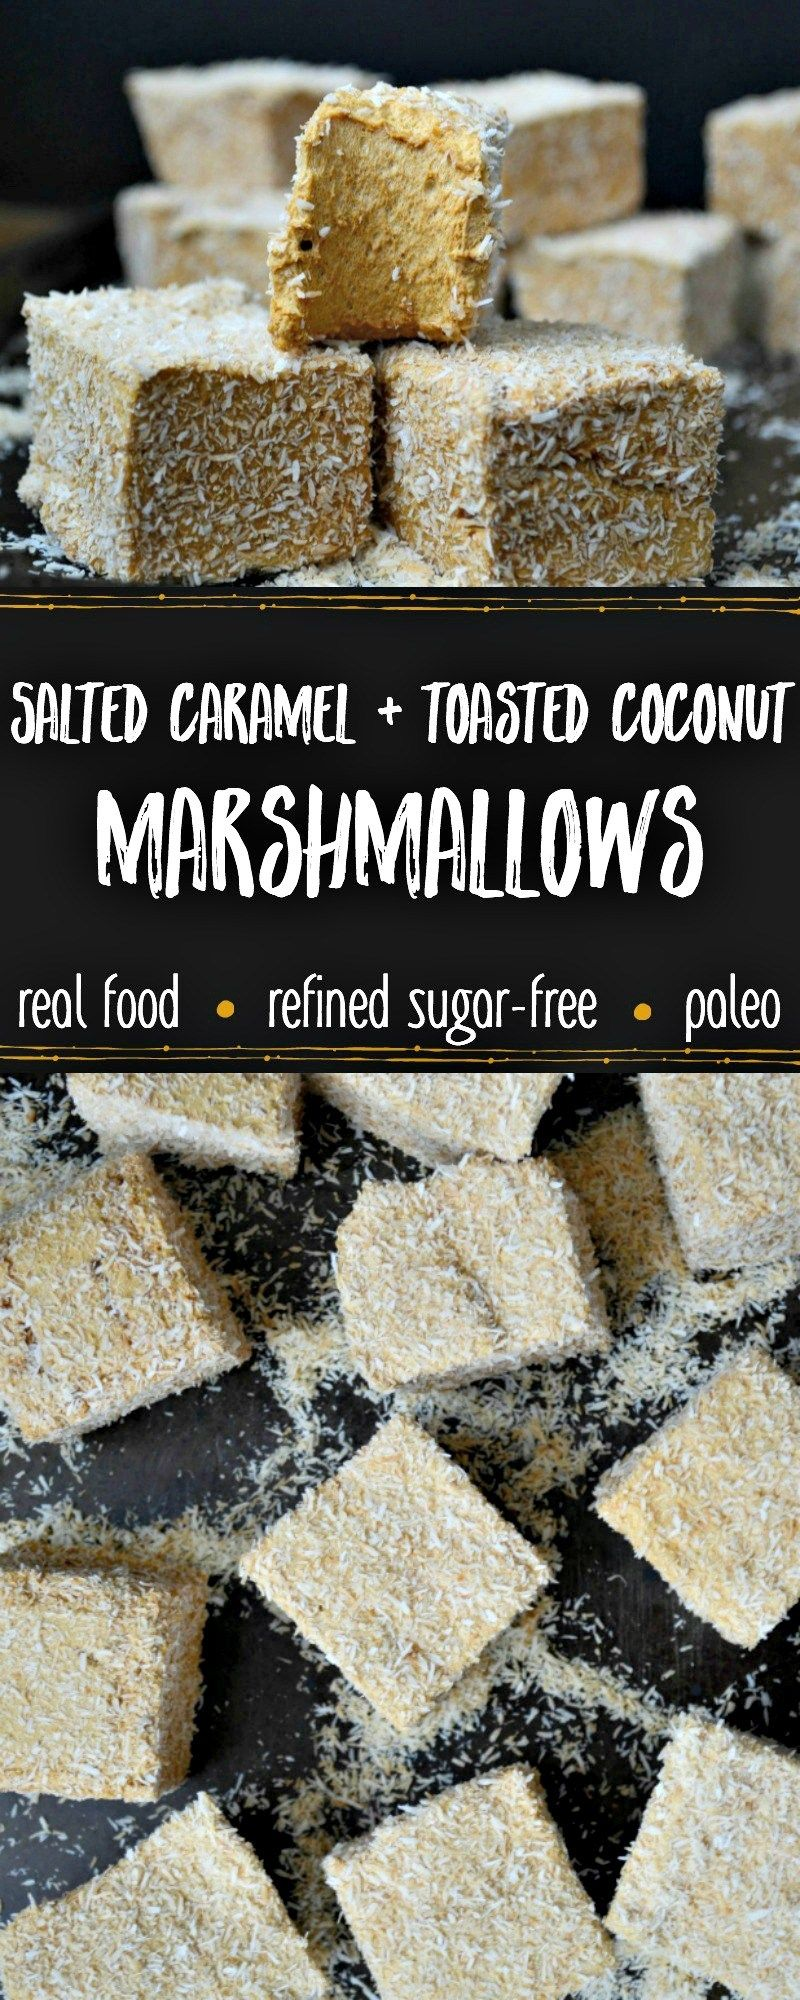 Paleo Salted Caramel & Toasted Coconut Marshmallows #marshmallows